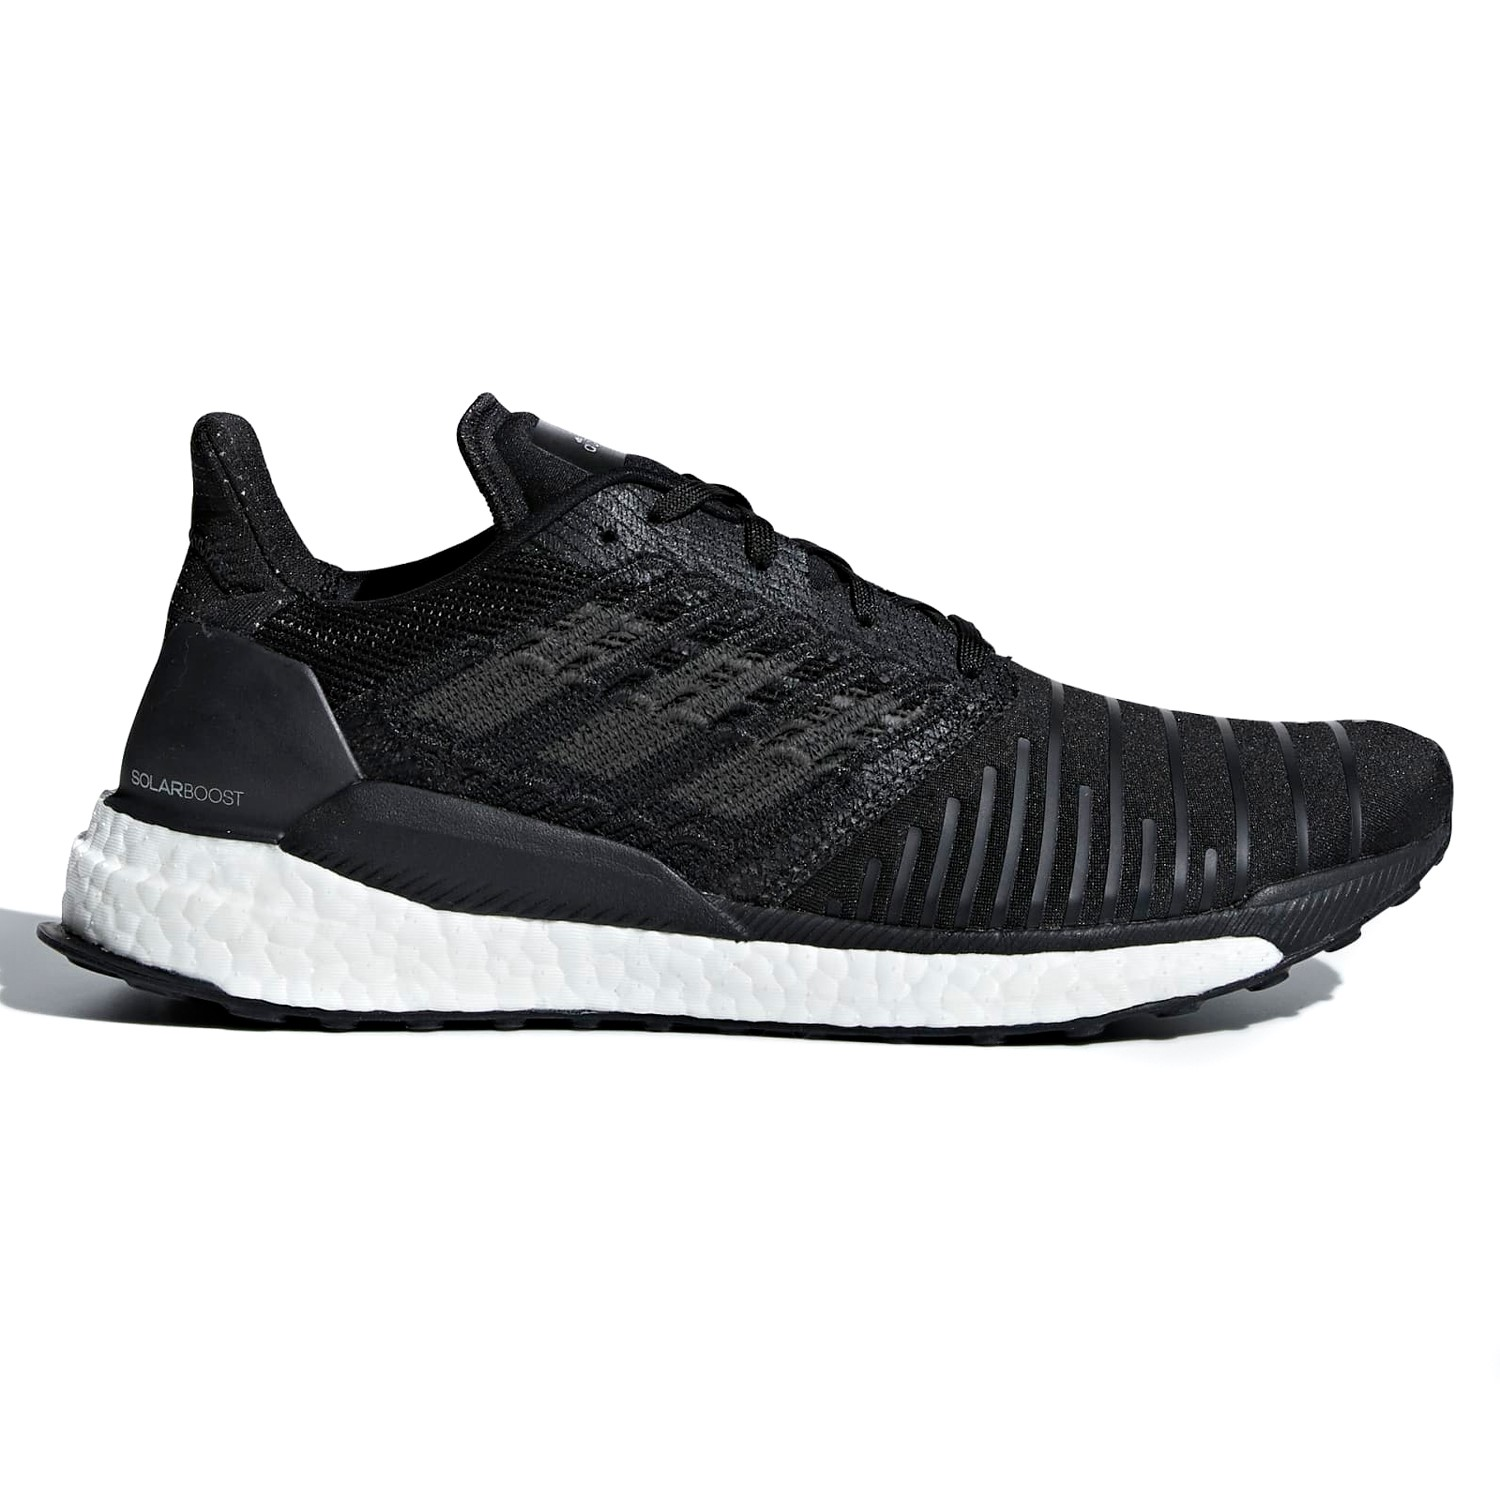 4029ca7d0 Adidas Solar Boost - Womens Running Shoes - Core Black Grey Footwear White